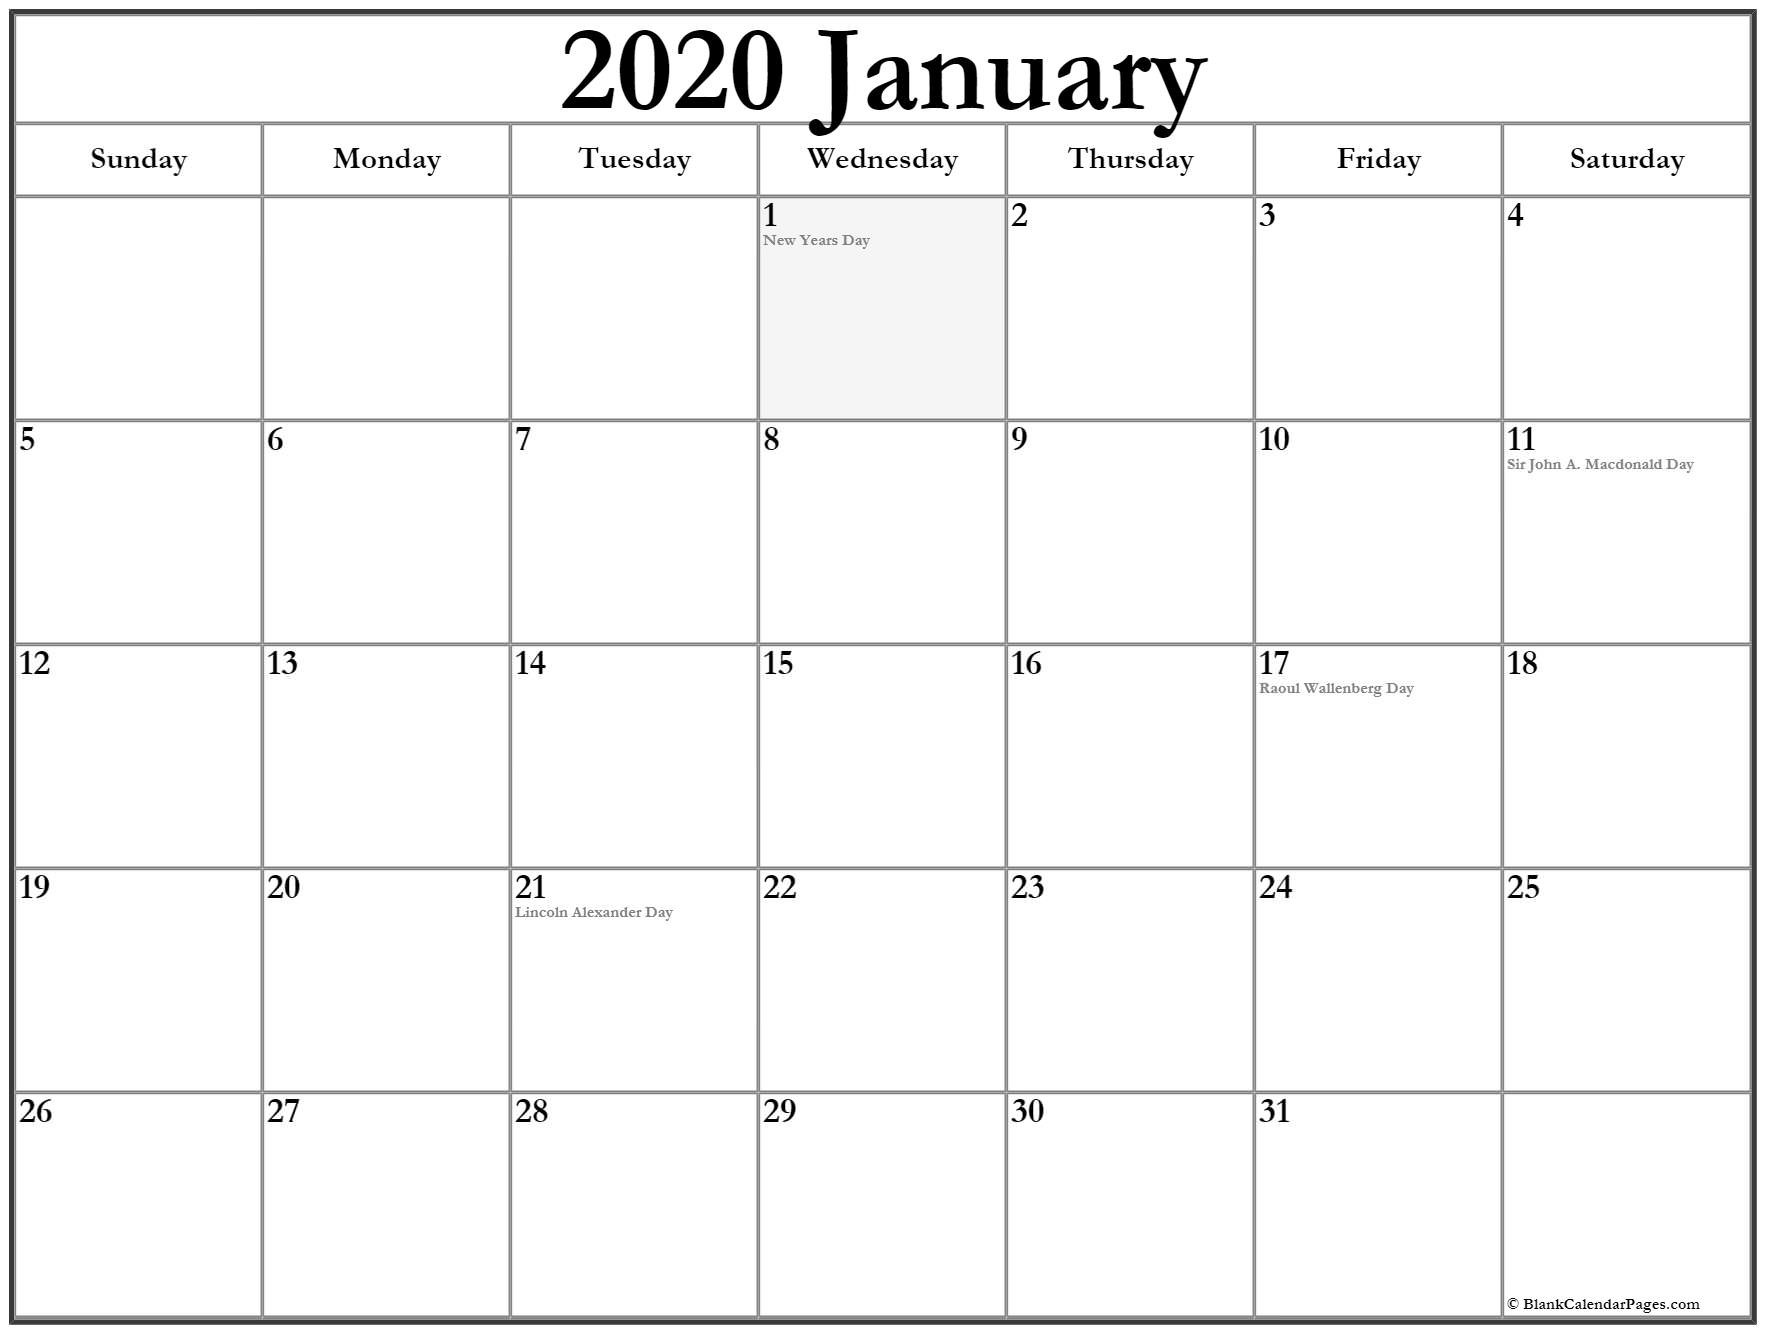 2020 Printable Calendar with Canadian Holidays Collection Of January 2020 Calendars with Holidays